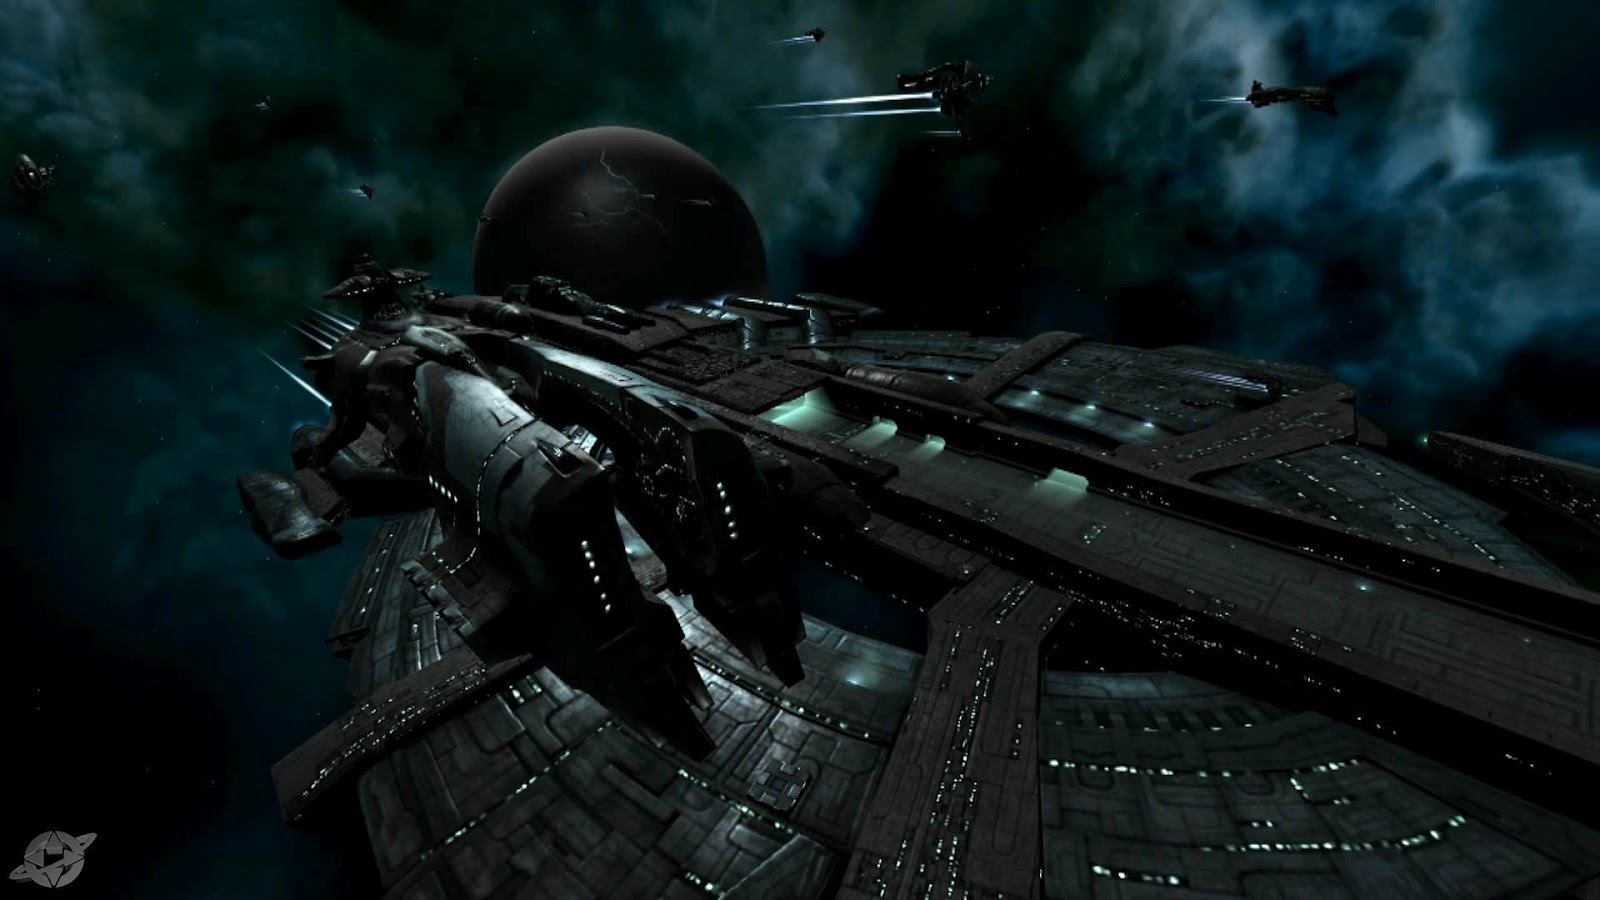 EVEOnlineWallpaper3 EVE Online Wallpaper in Ful HD 1080p 1600x900